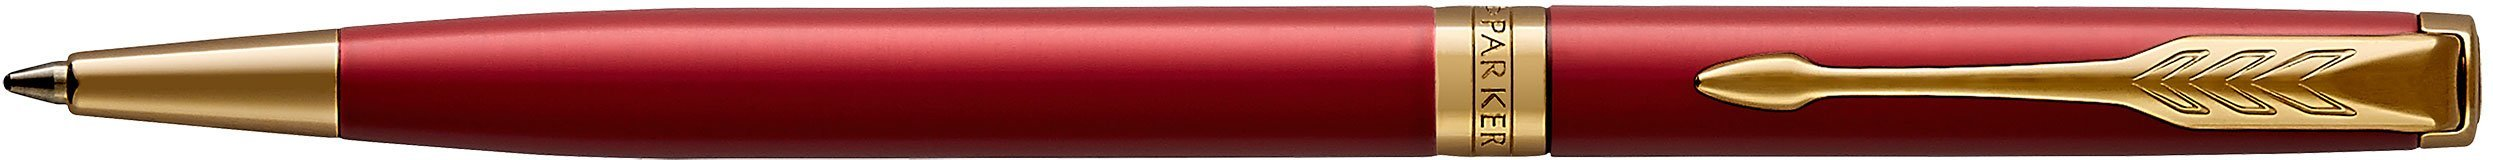 Шариковая ручка Parker Sonnet Core K439 Slim, Lacquer Intense Red GT